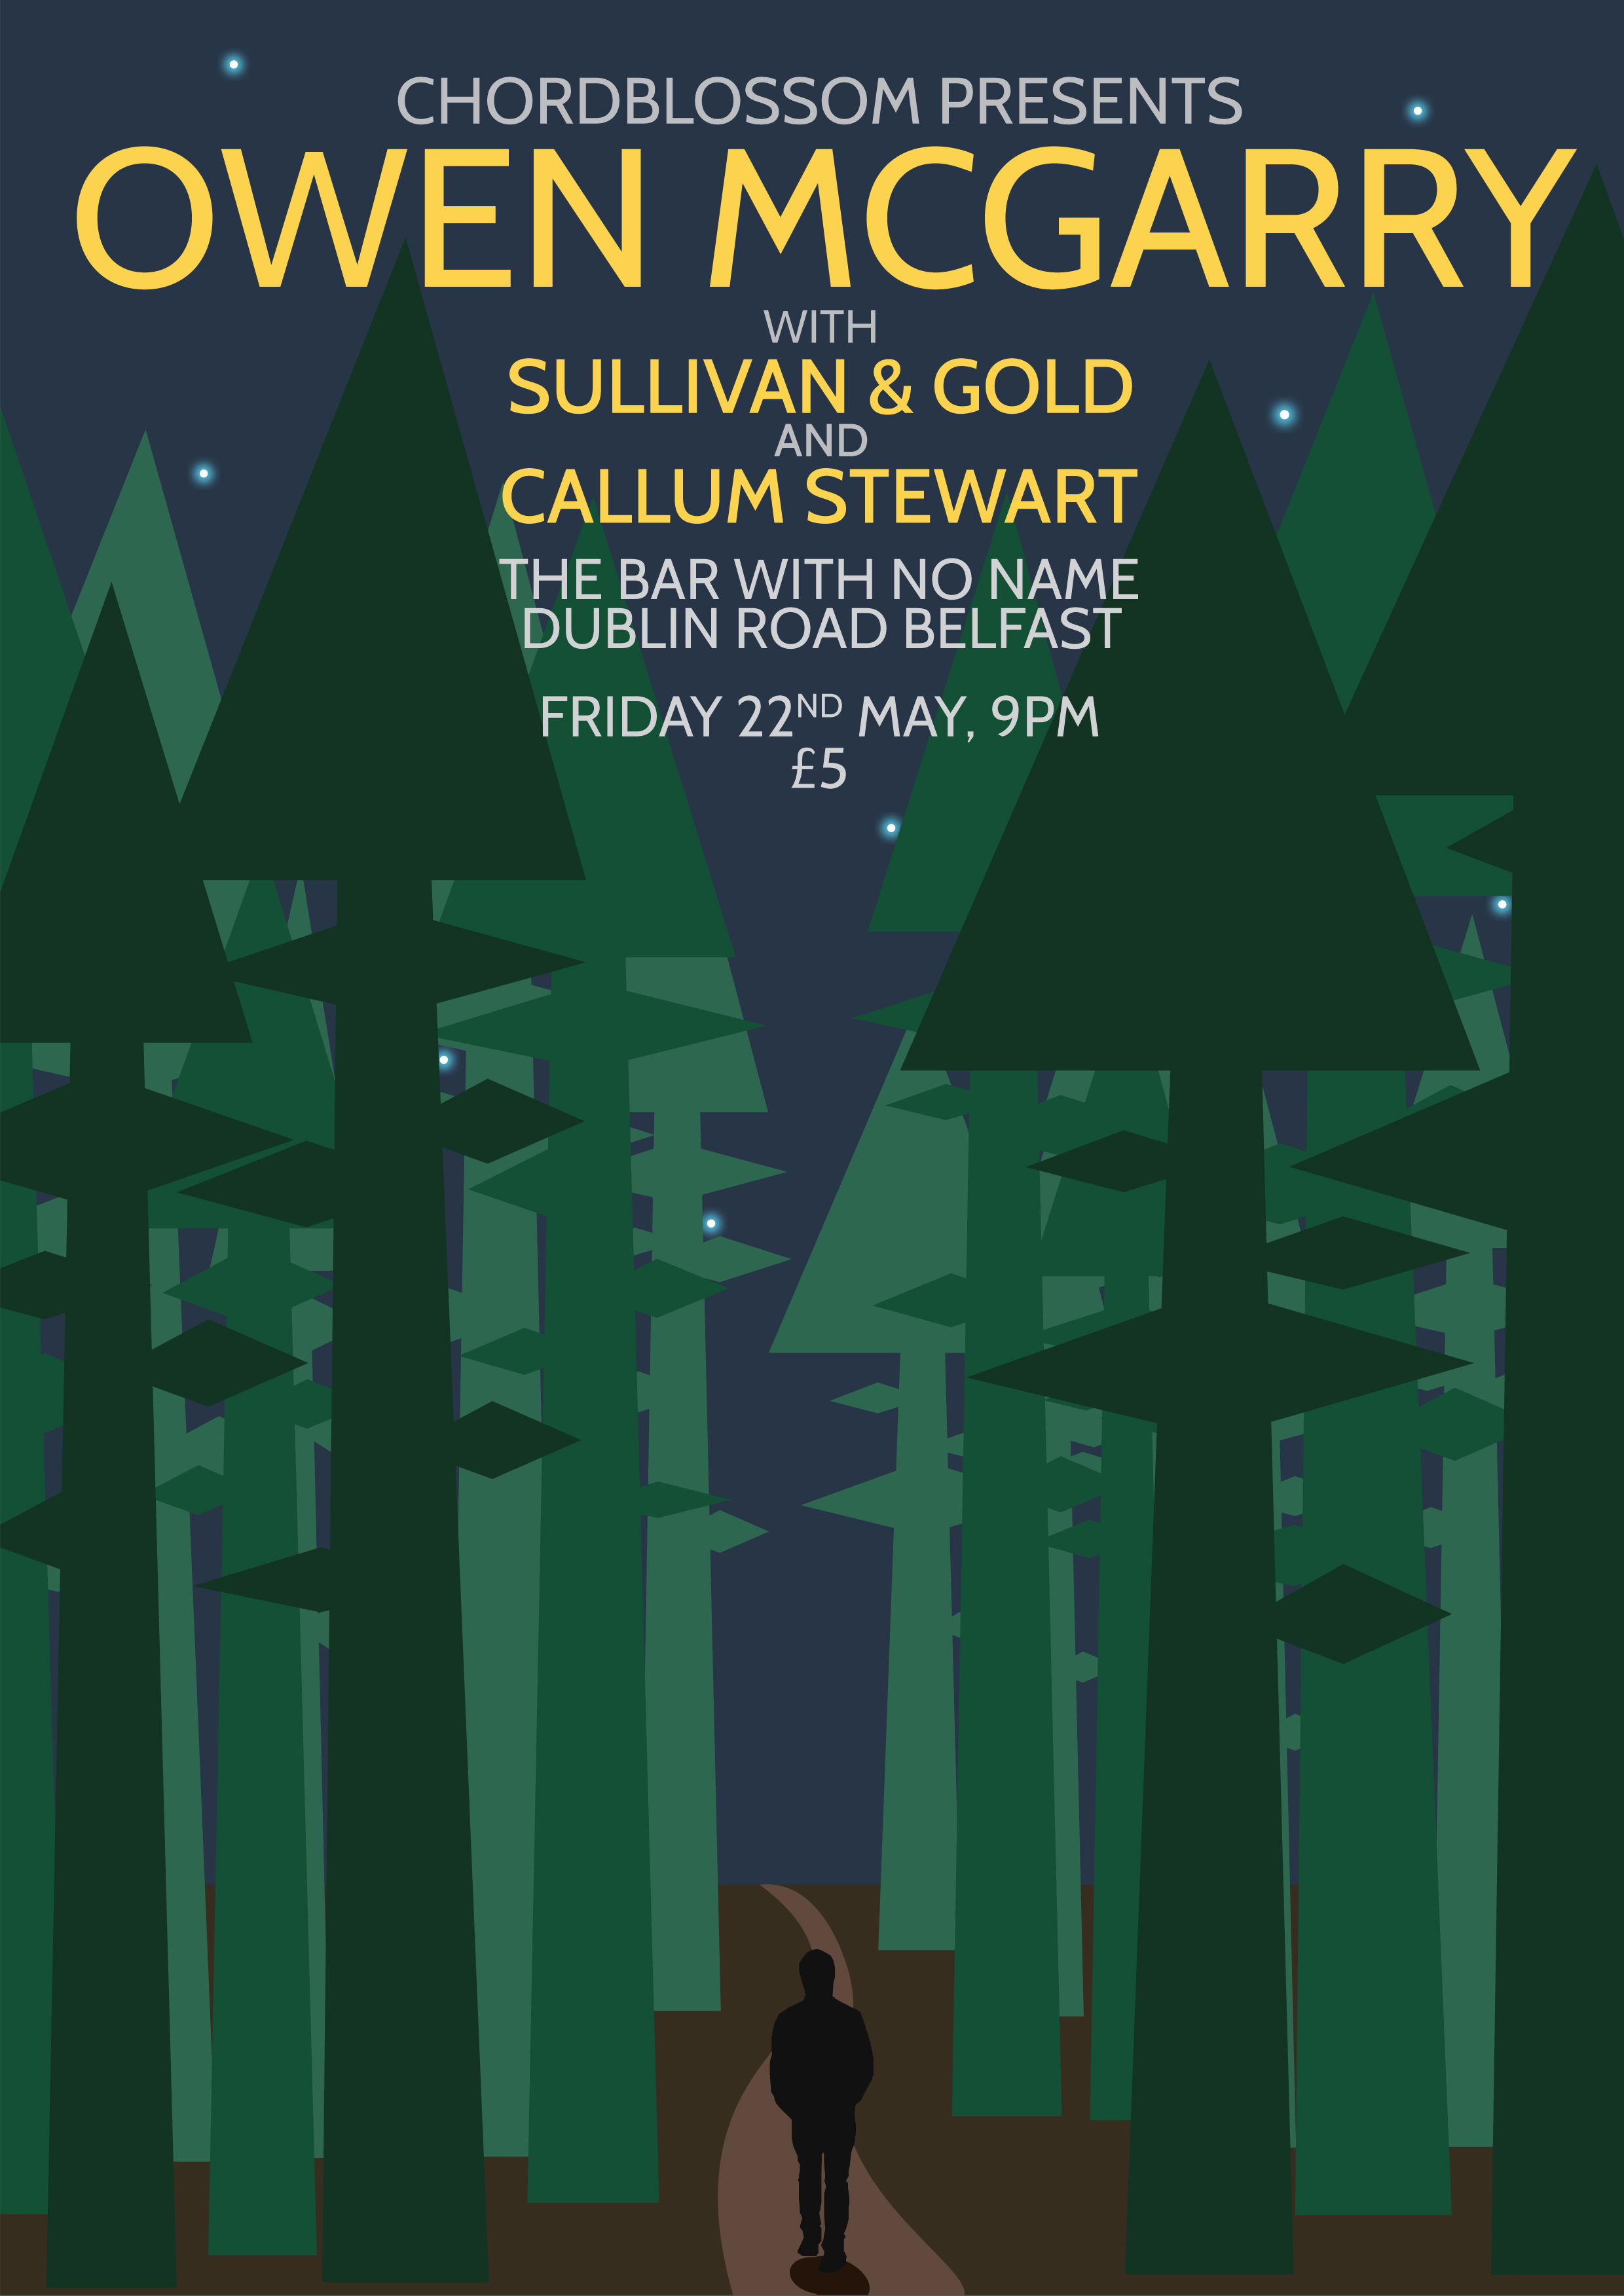 Chordblossom Presents: Owen McGarry South EP Launch with Sullivan & Gold and Callum Stewart